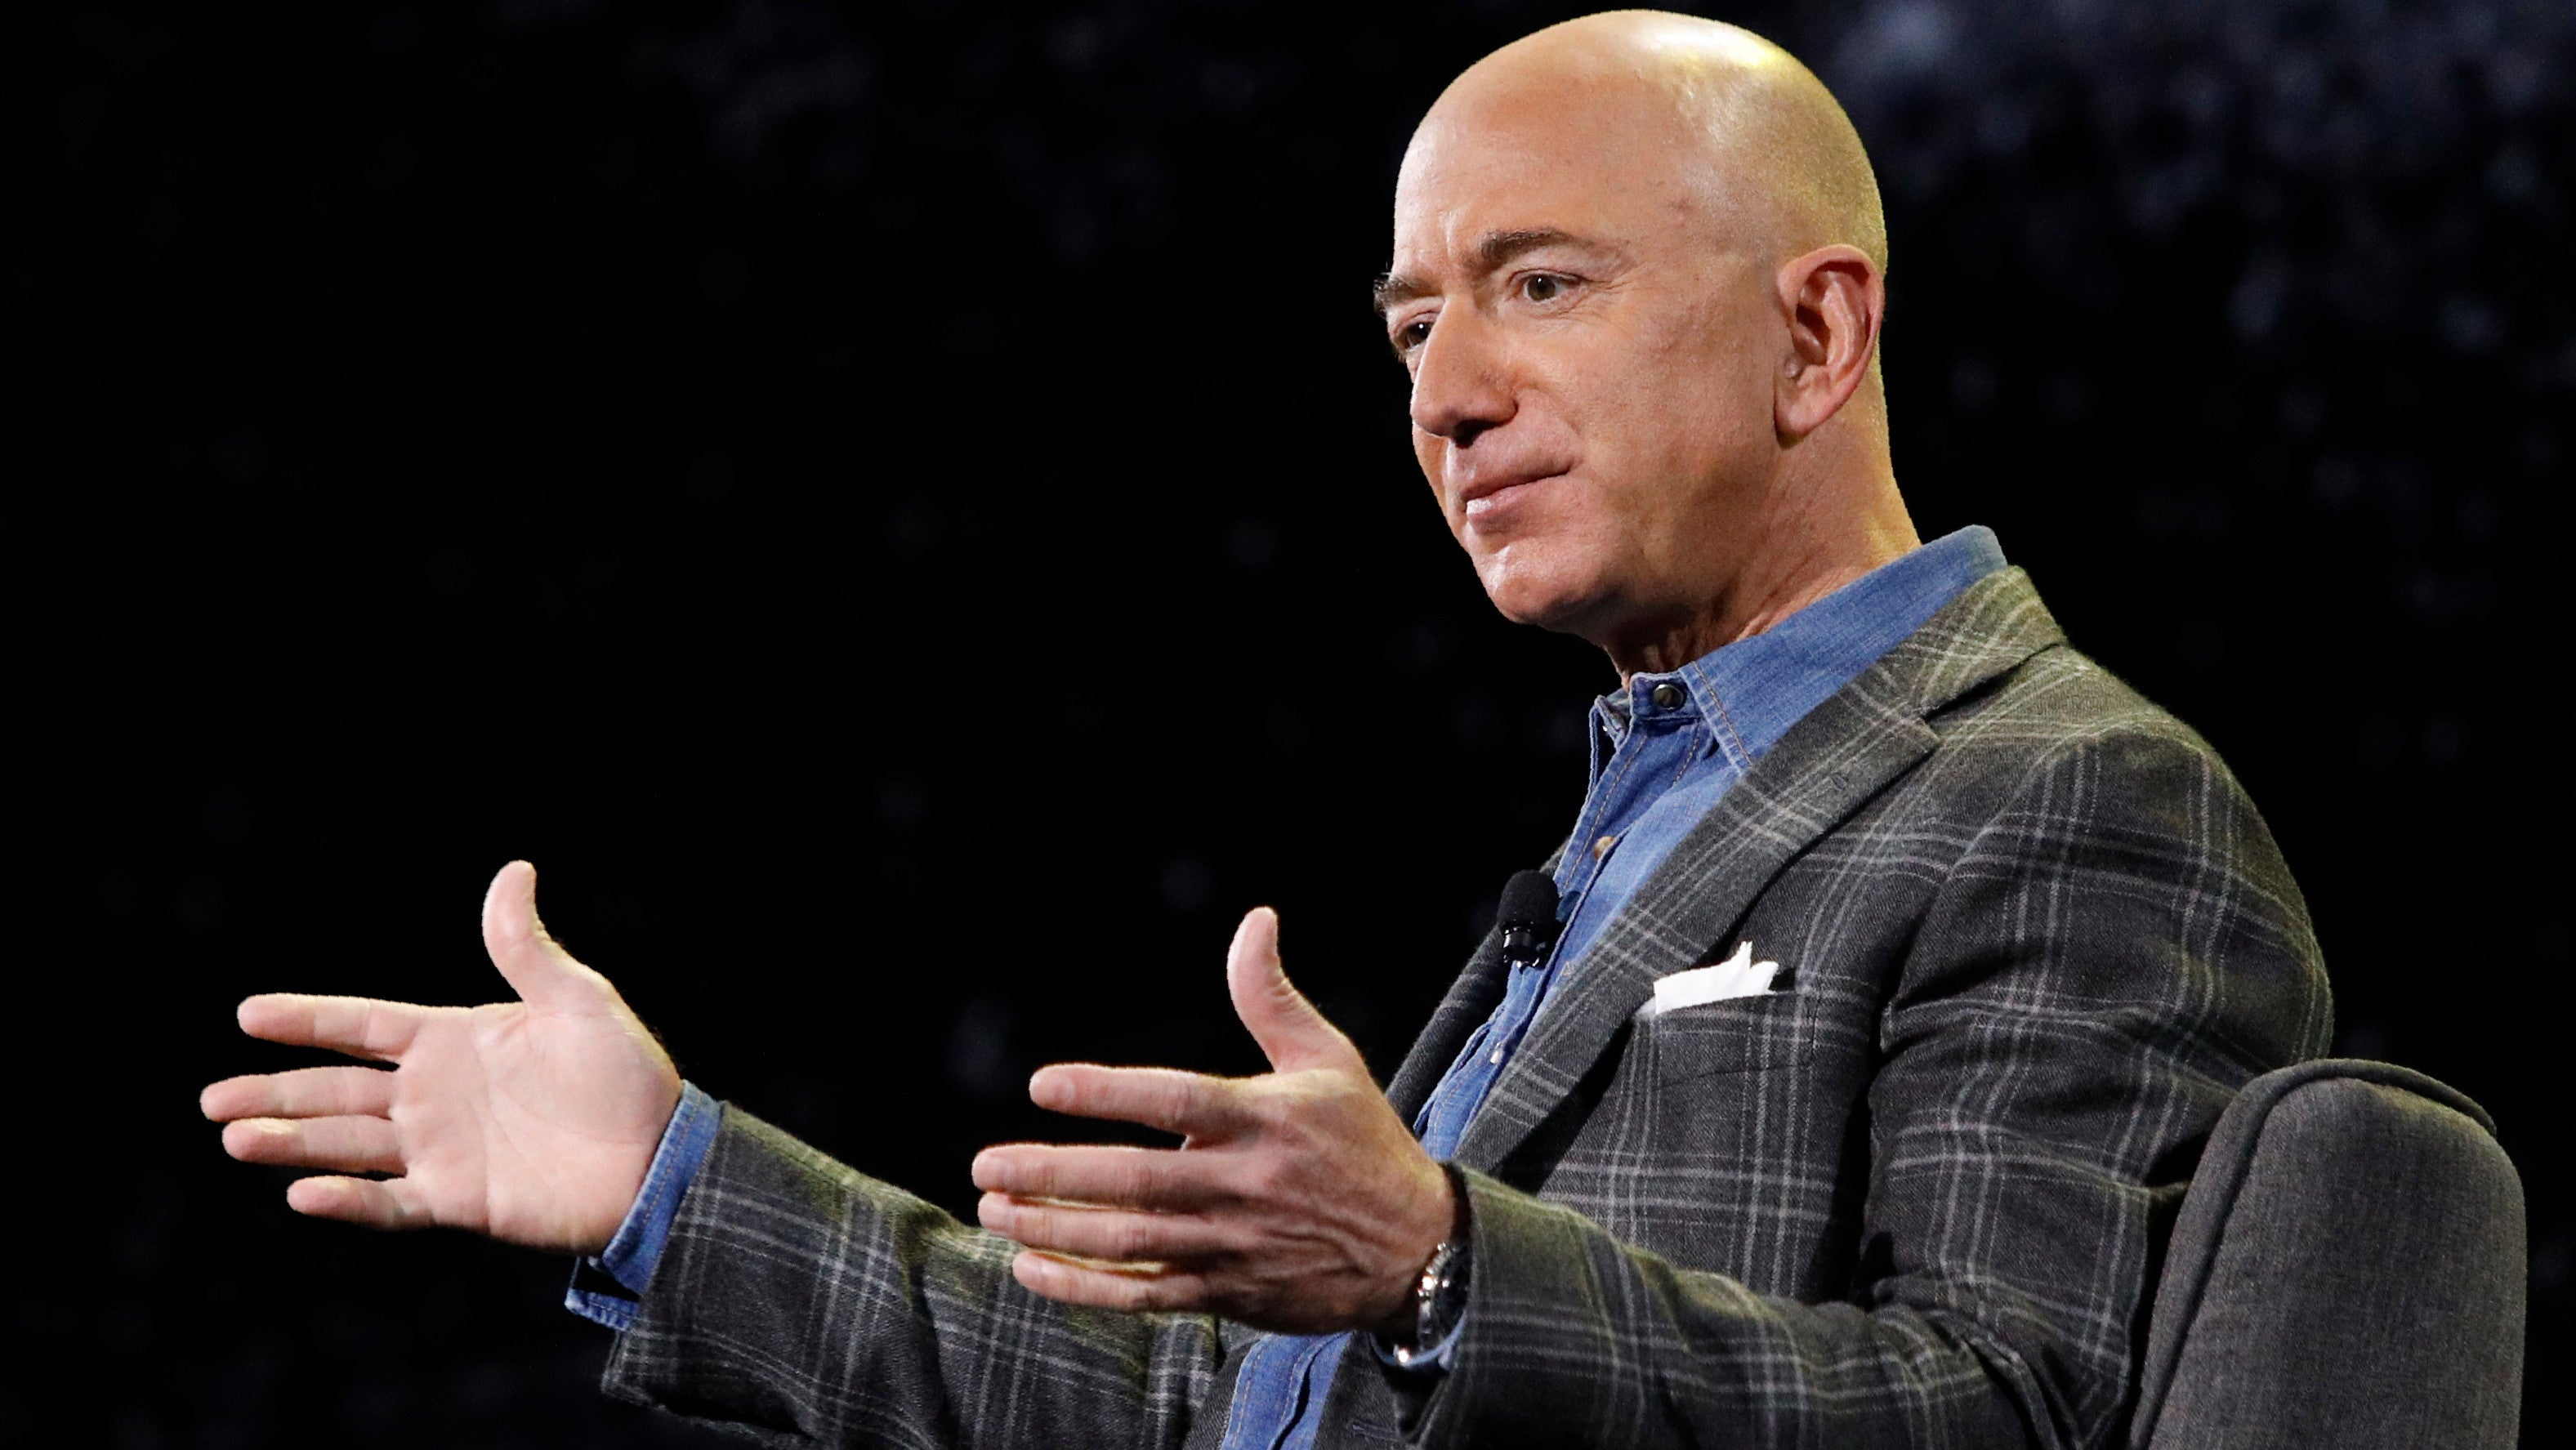 Jeff Bezos Outlines Plan To Colonise Space, Interrupted By Chicken Protestor